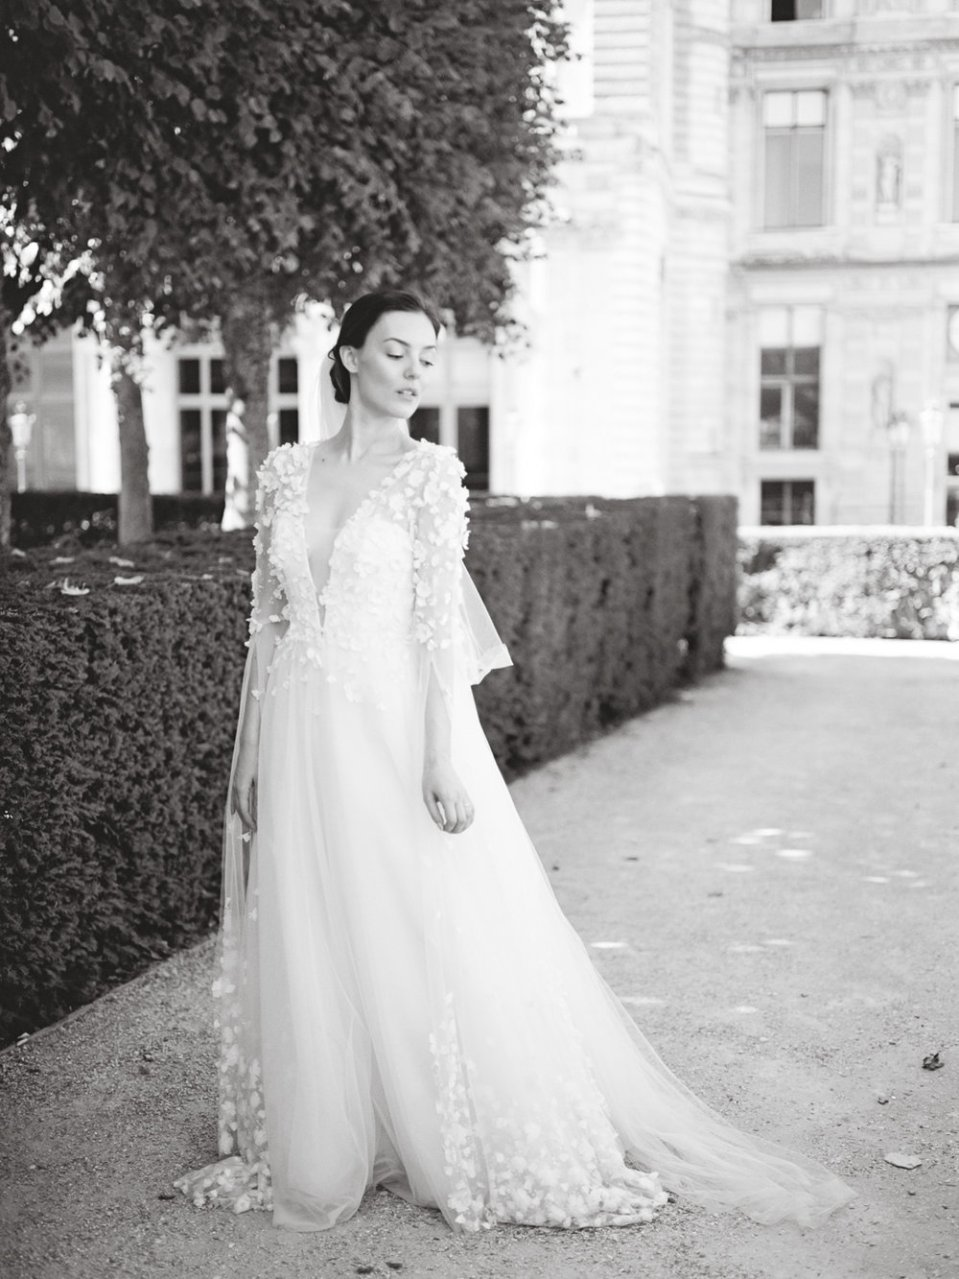 Destination Fine Art Wedding Editorial Photography in Paris with Max Chaoul -57.jpg